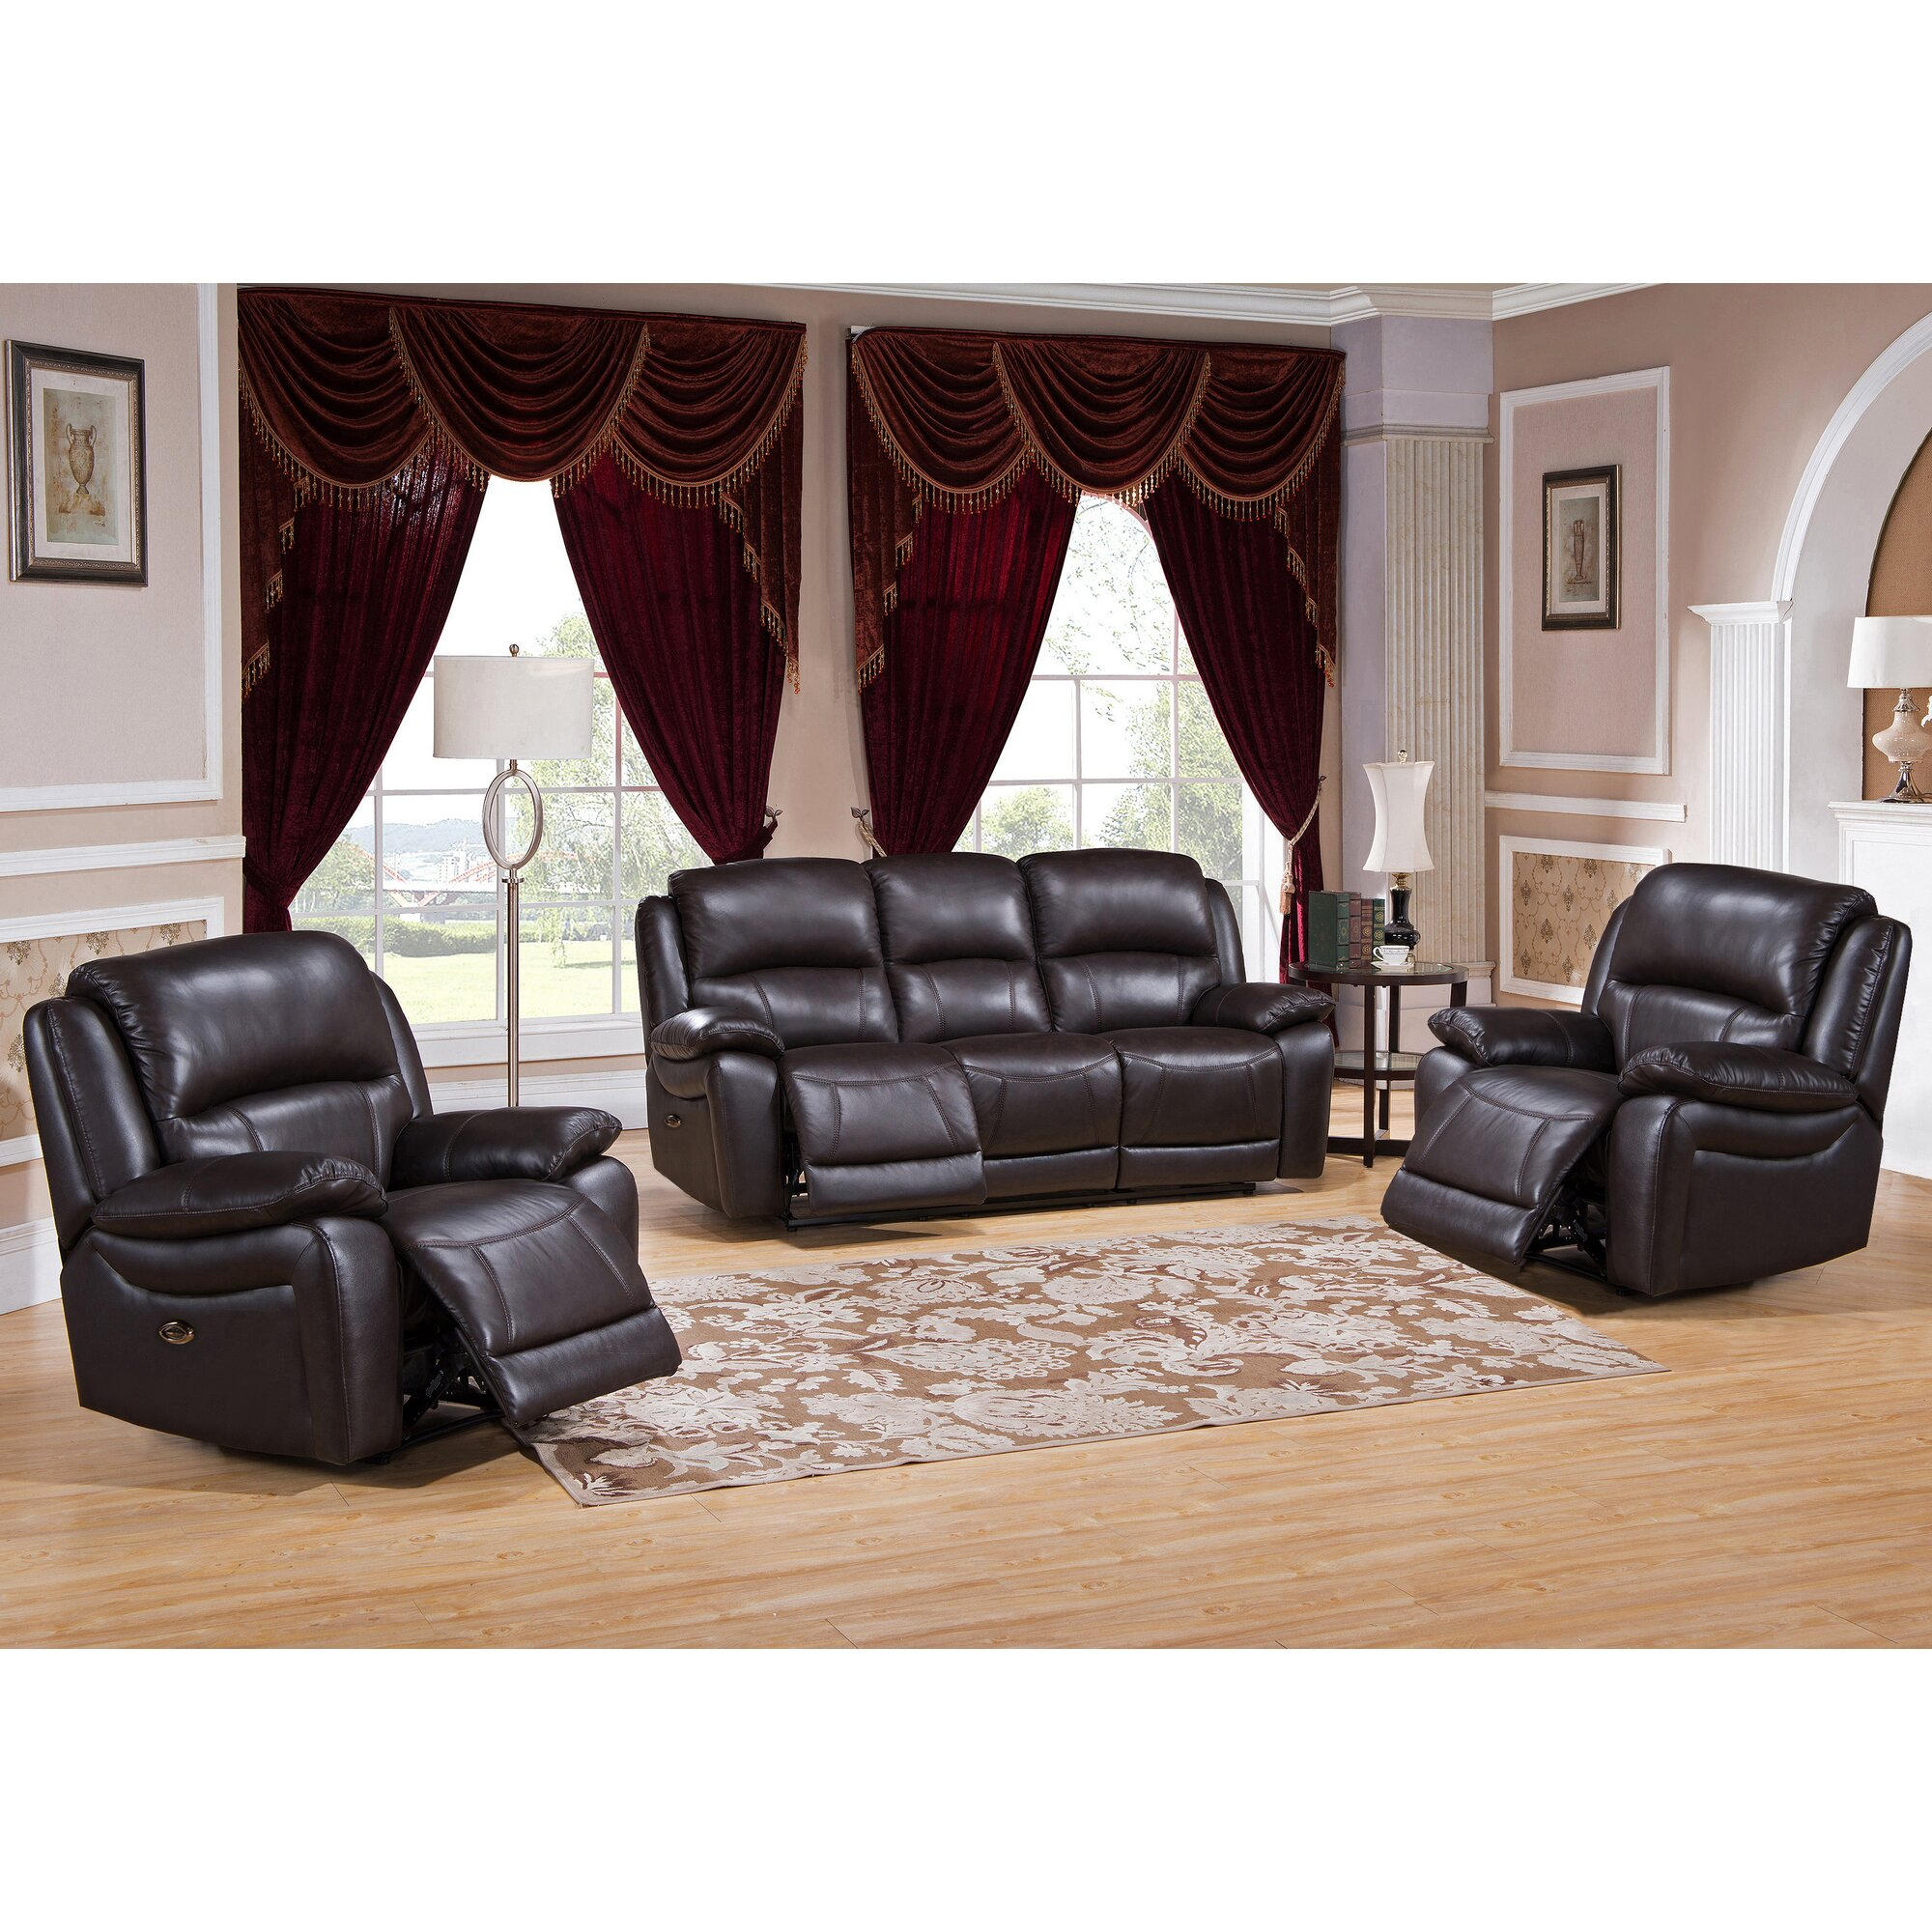 Hydelinebyamax Kingston 3 Piece Leather Living Room Set